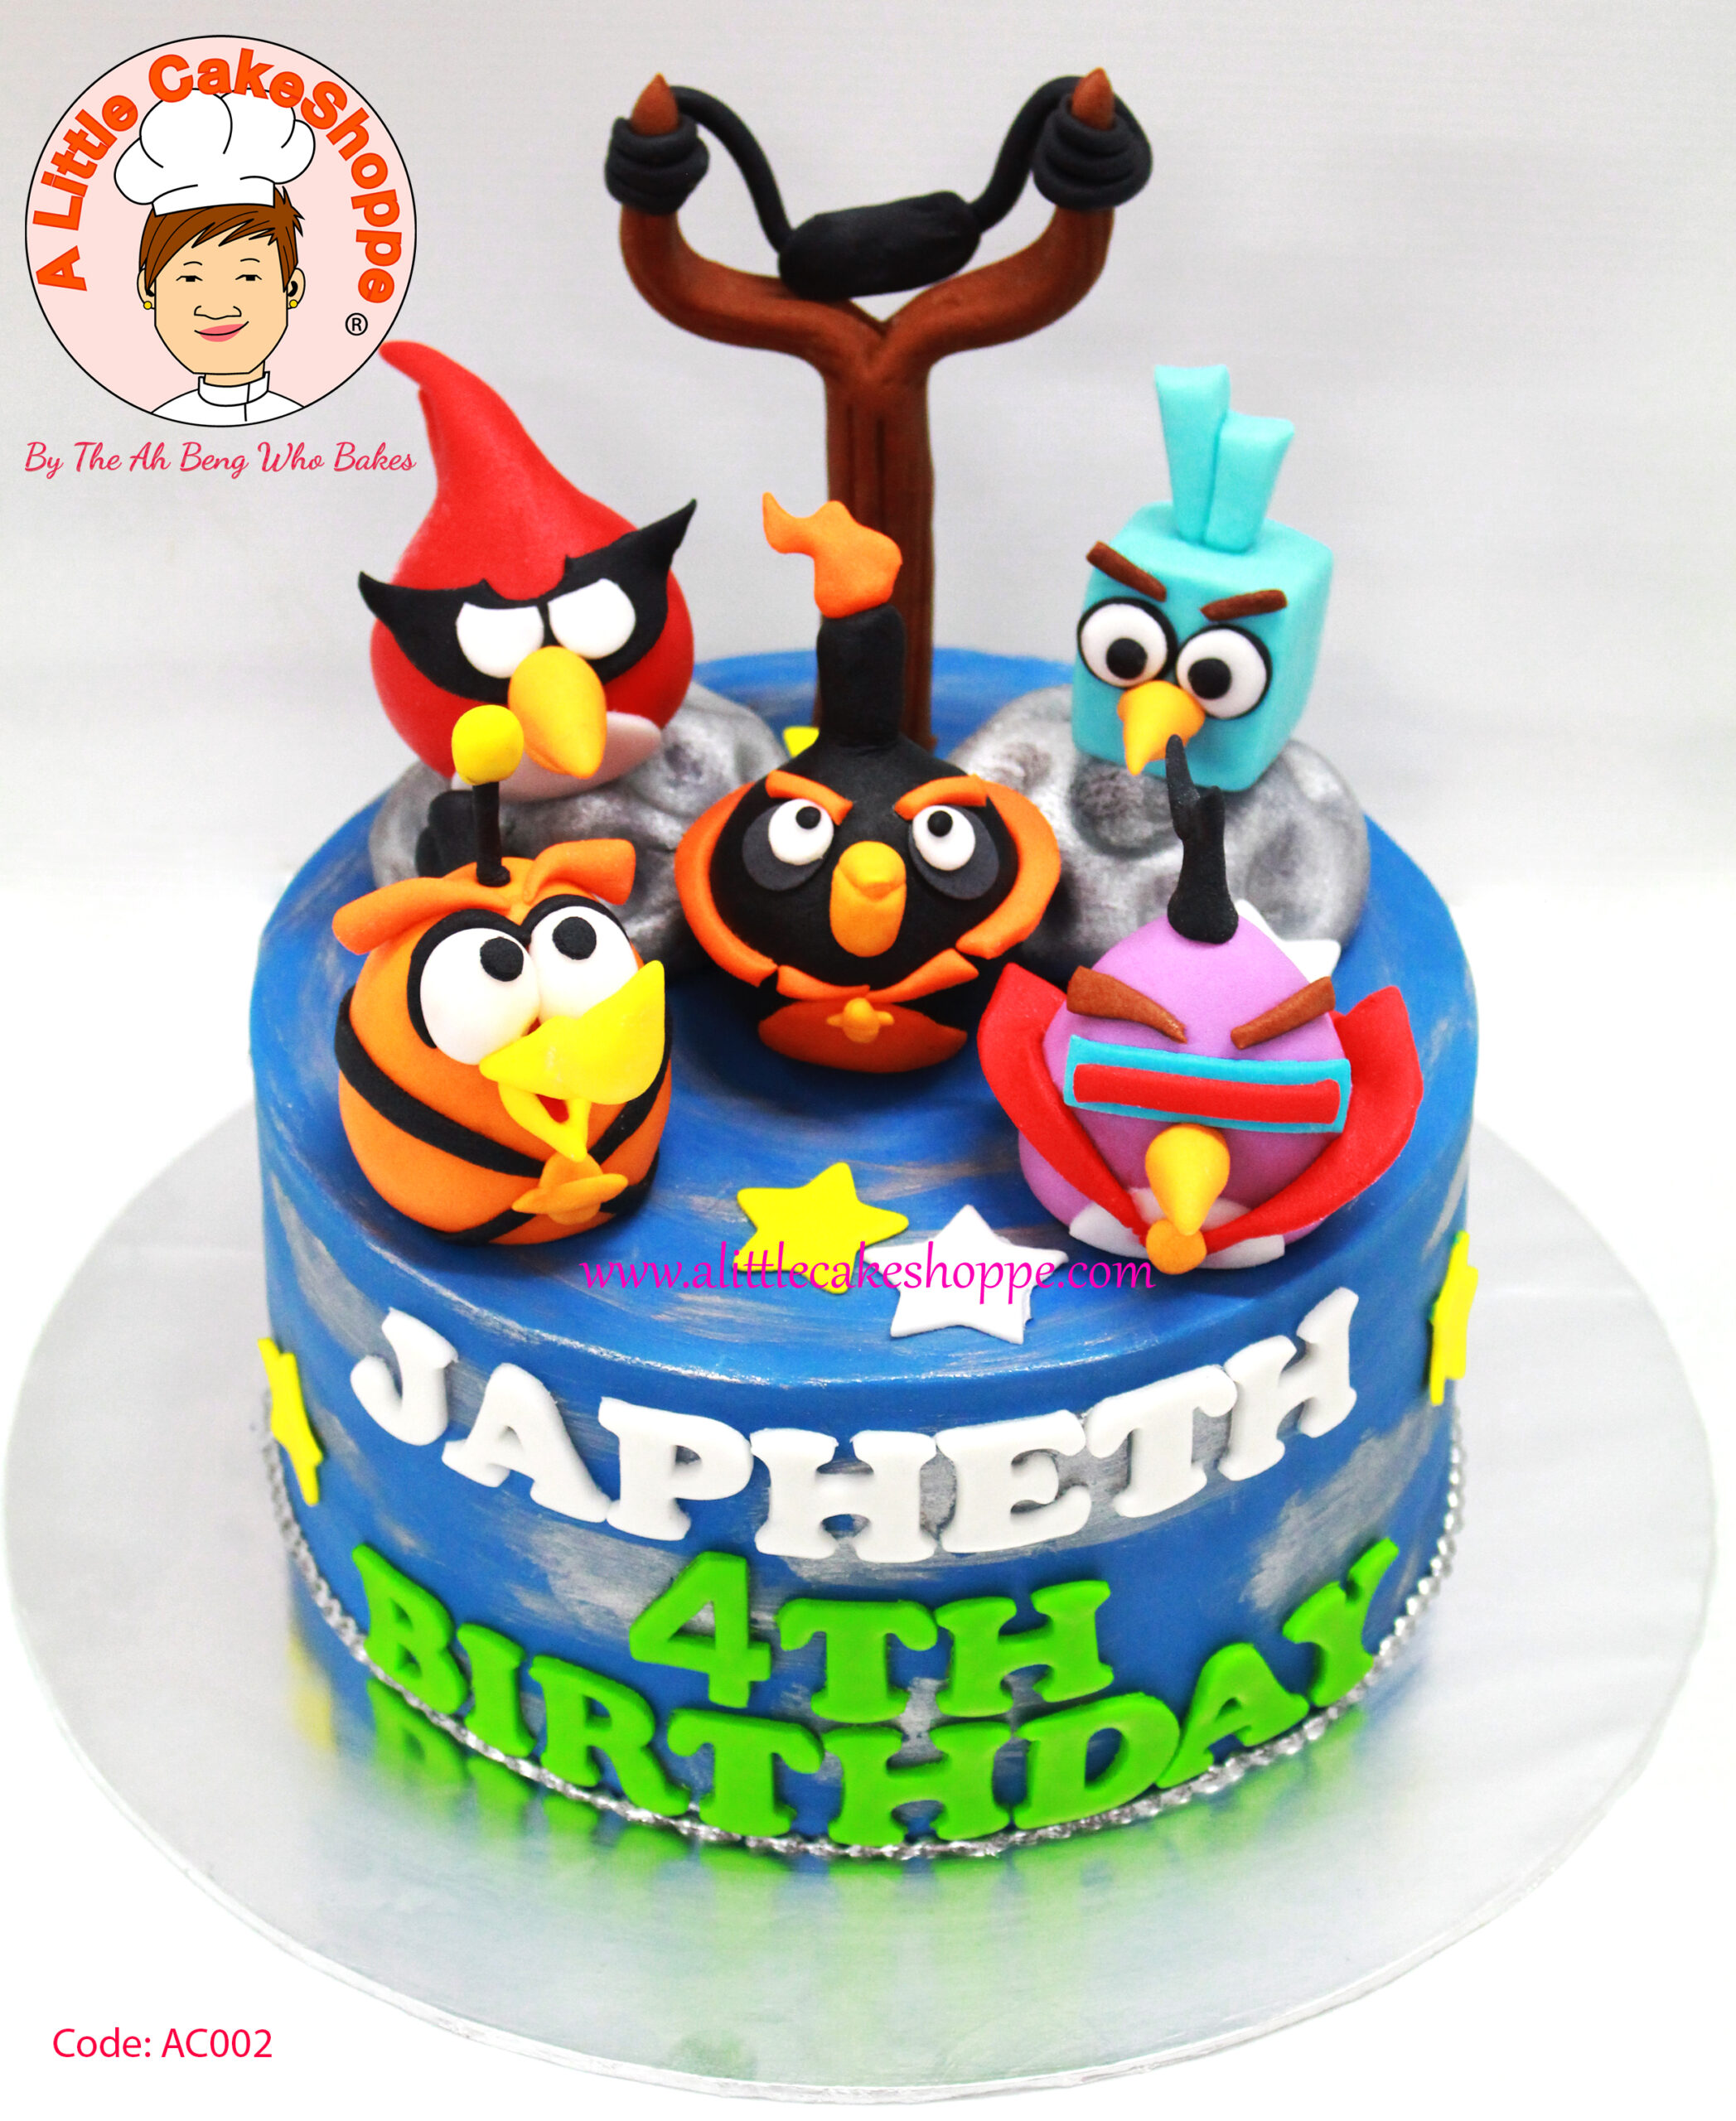 Best Customised Cake Shop Singapore custom cake 2D 3D birthday cake cupcakes desserts wedding corporate events anniversary 1st birthday 21st birthday fondant fresh cream buttercream cakes alittlecakeshoppe a little cake shoppe compliments review singapore bakers SG cake shop cakeshop ah beng who bakes angry bird